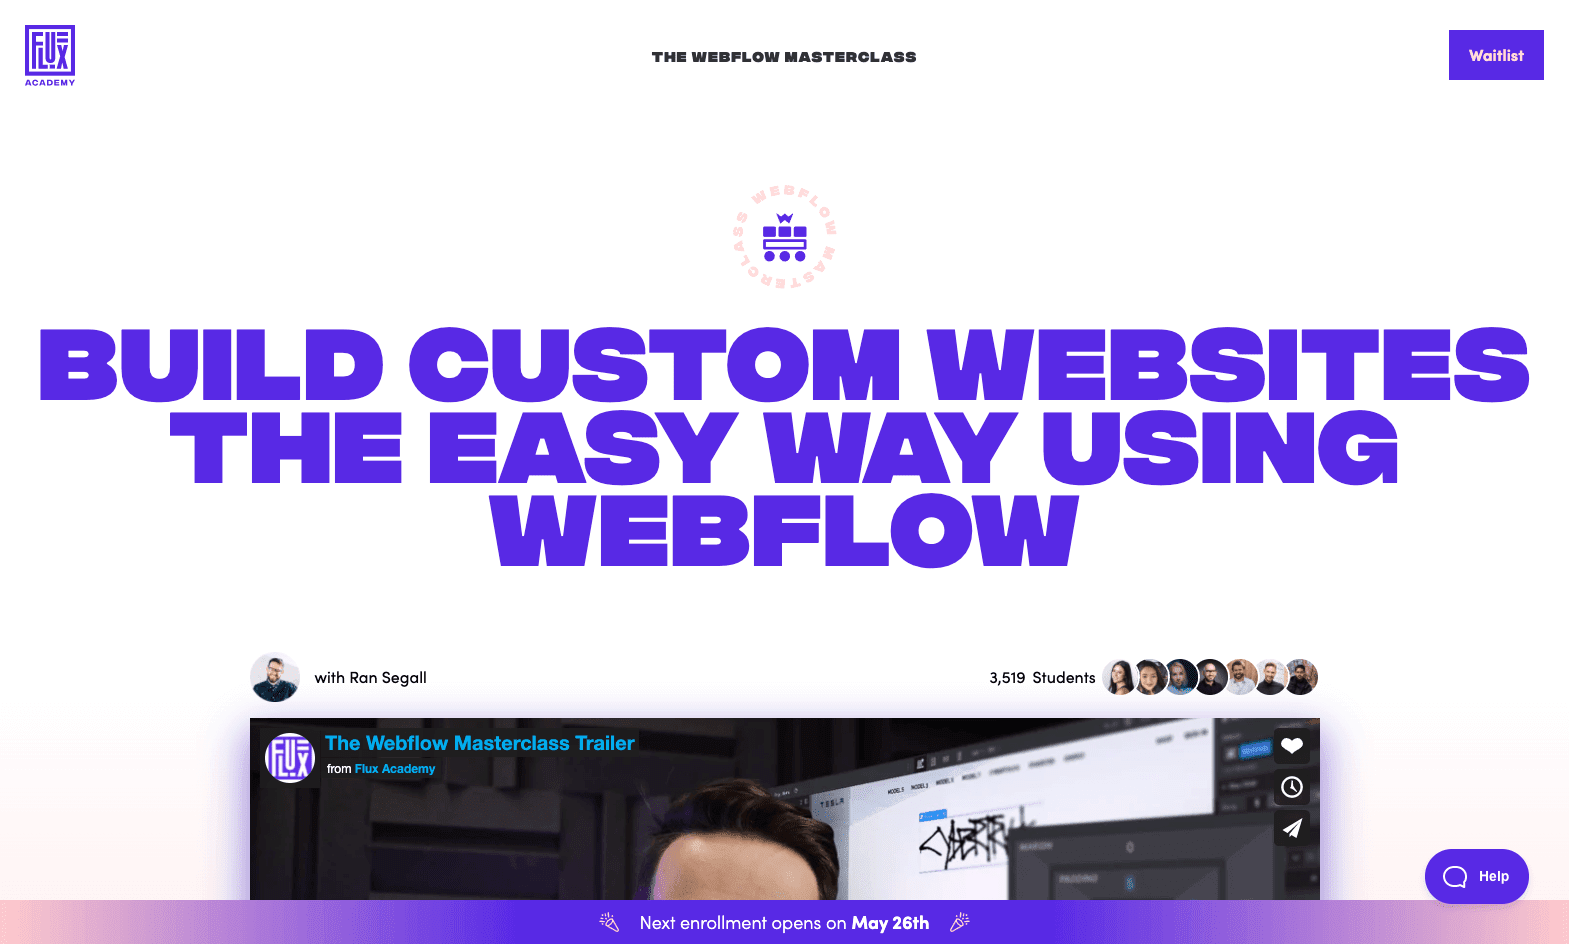 The next round of The Webflow Masterclass opens for enrollment on May 26, 2021.